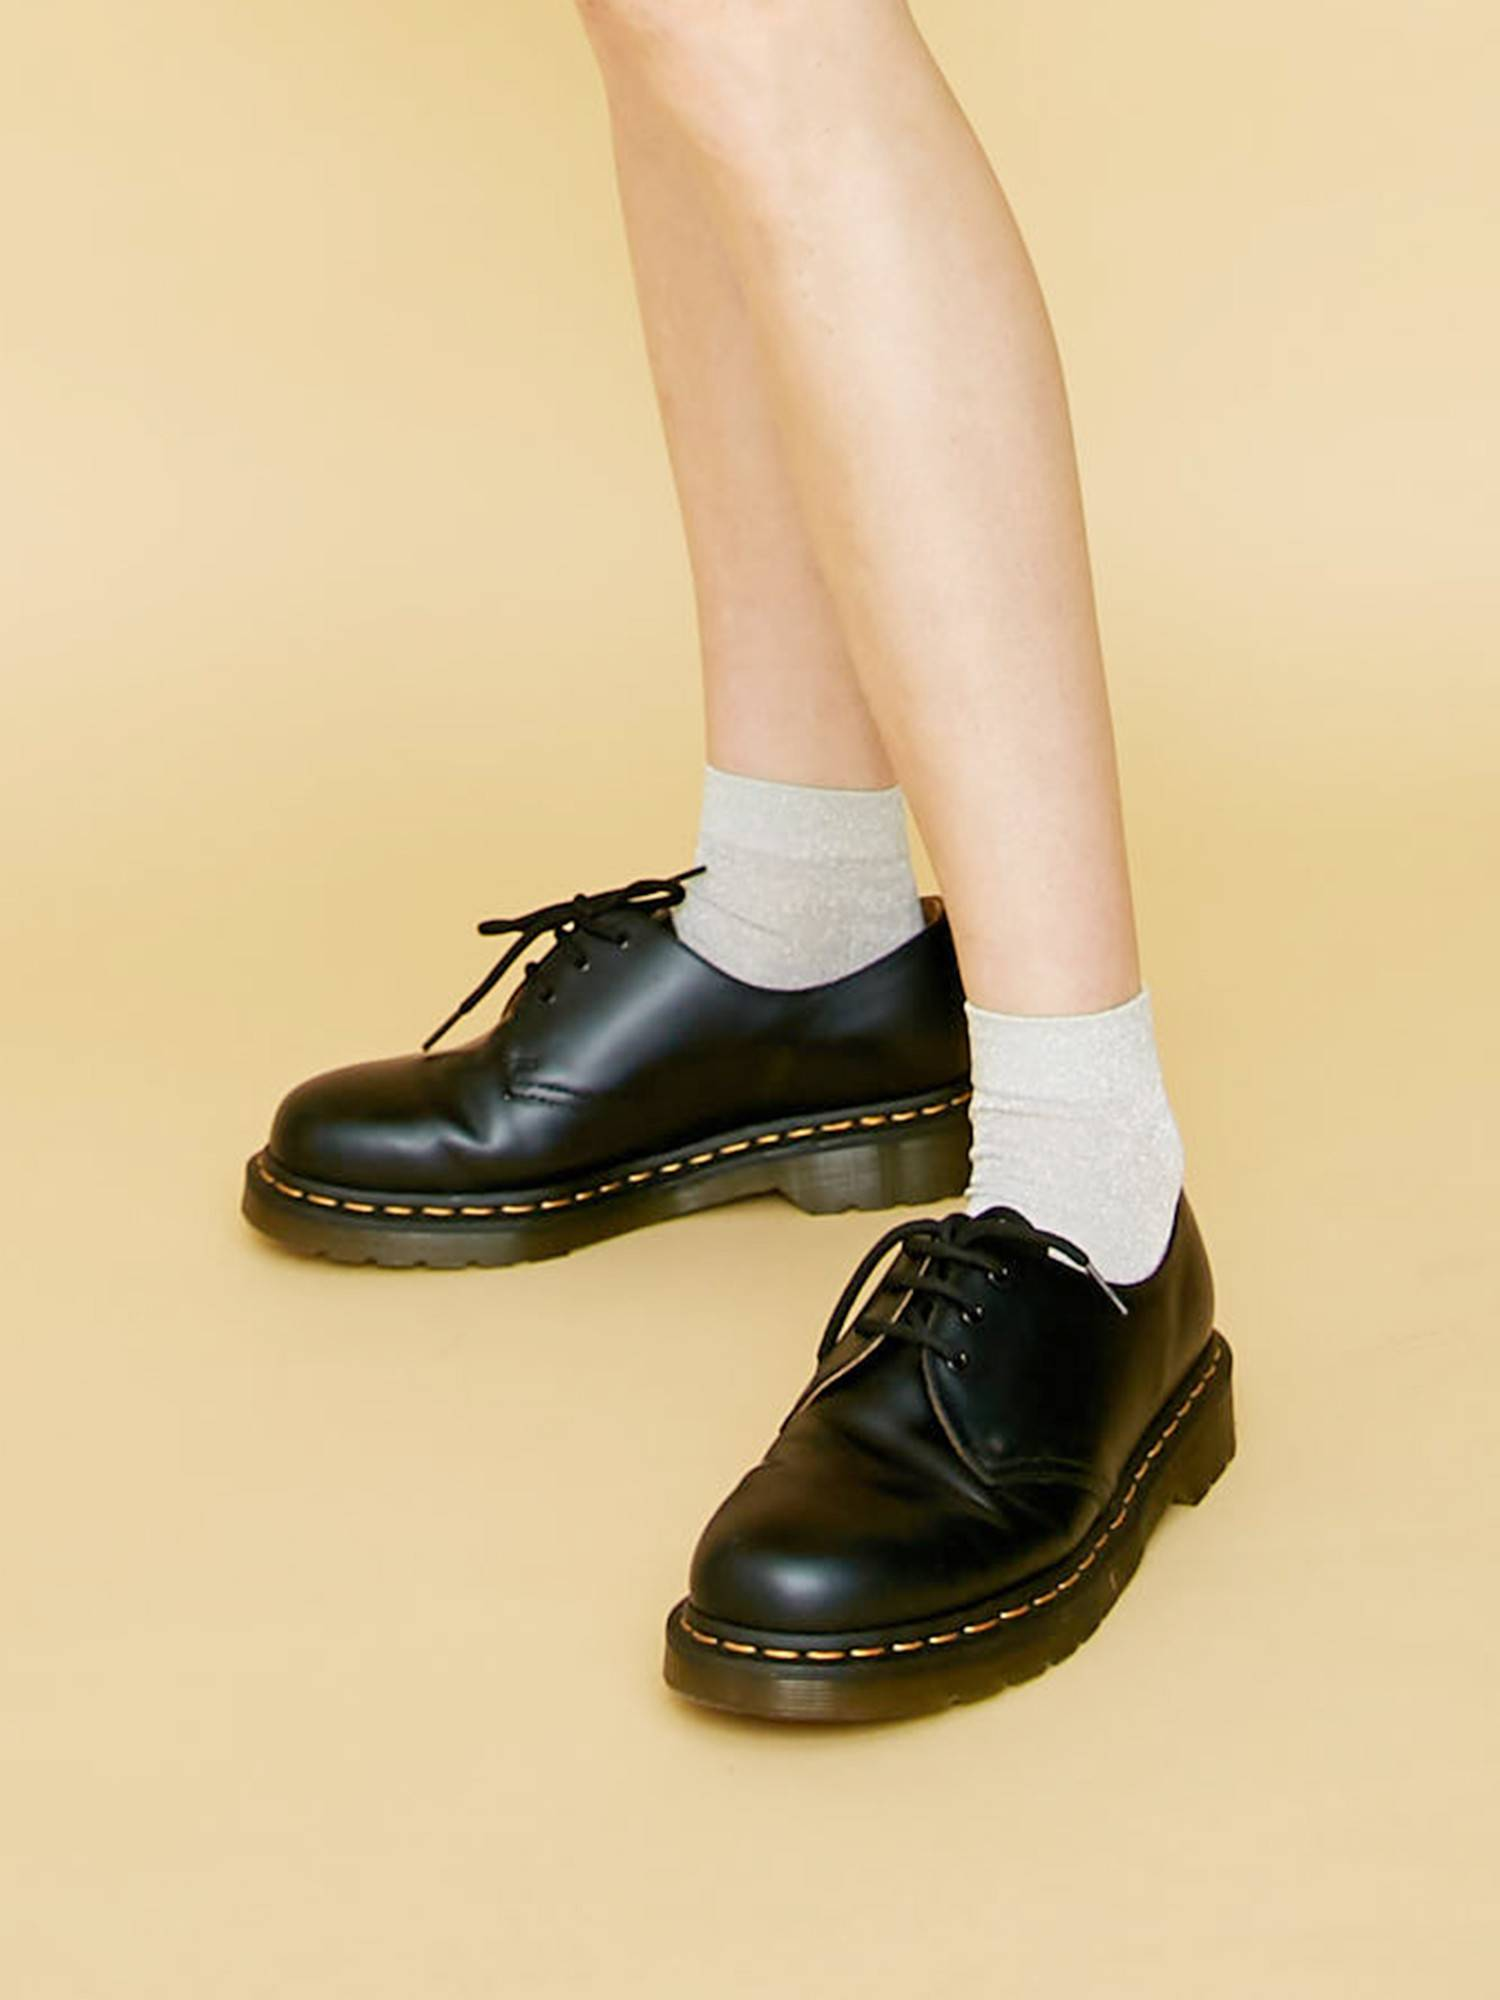 【Dr.Martens】1461 3EYE SHOE